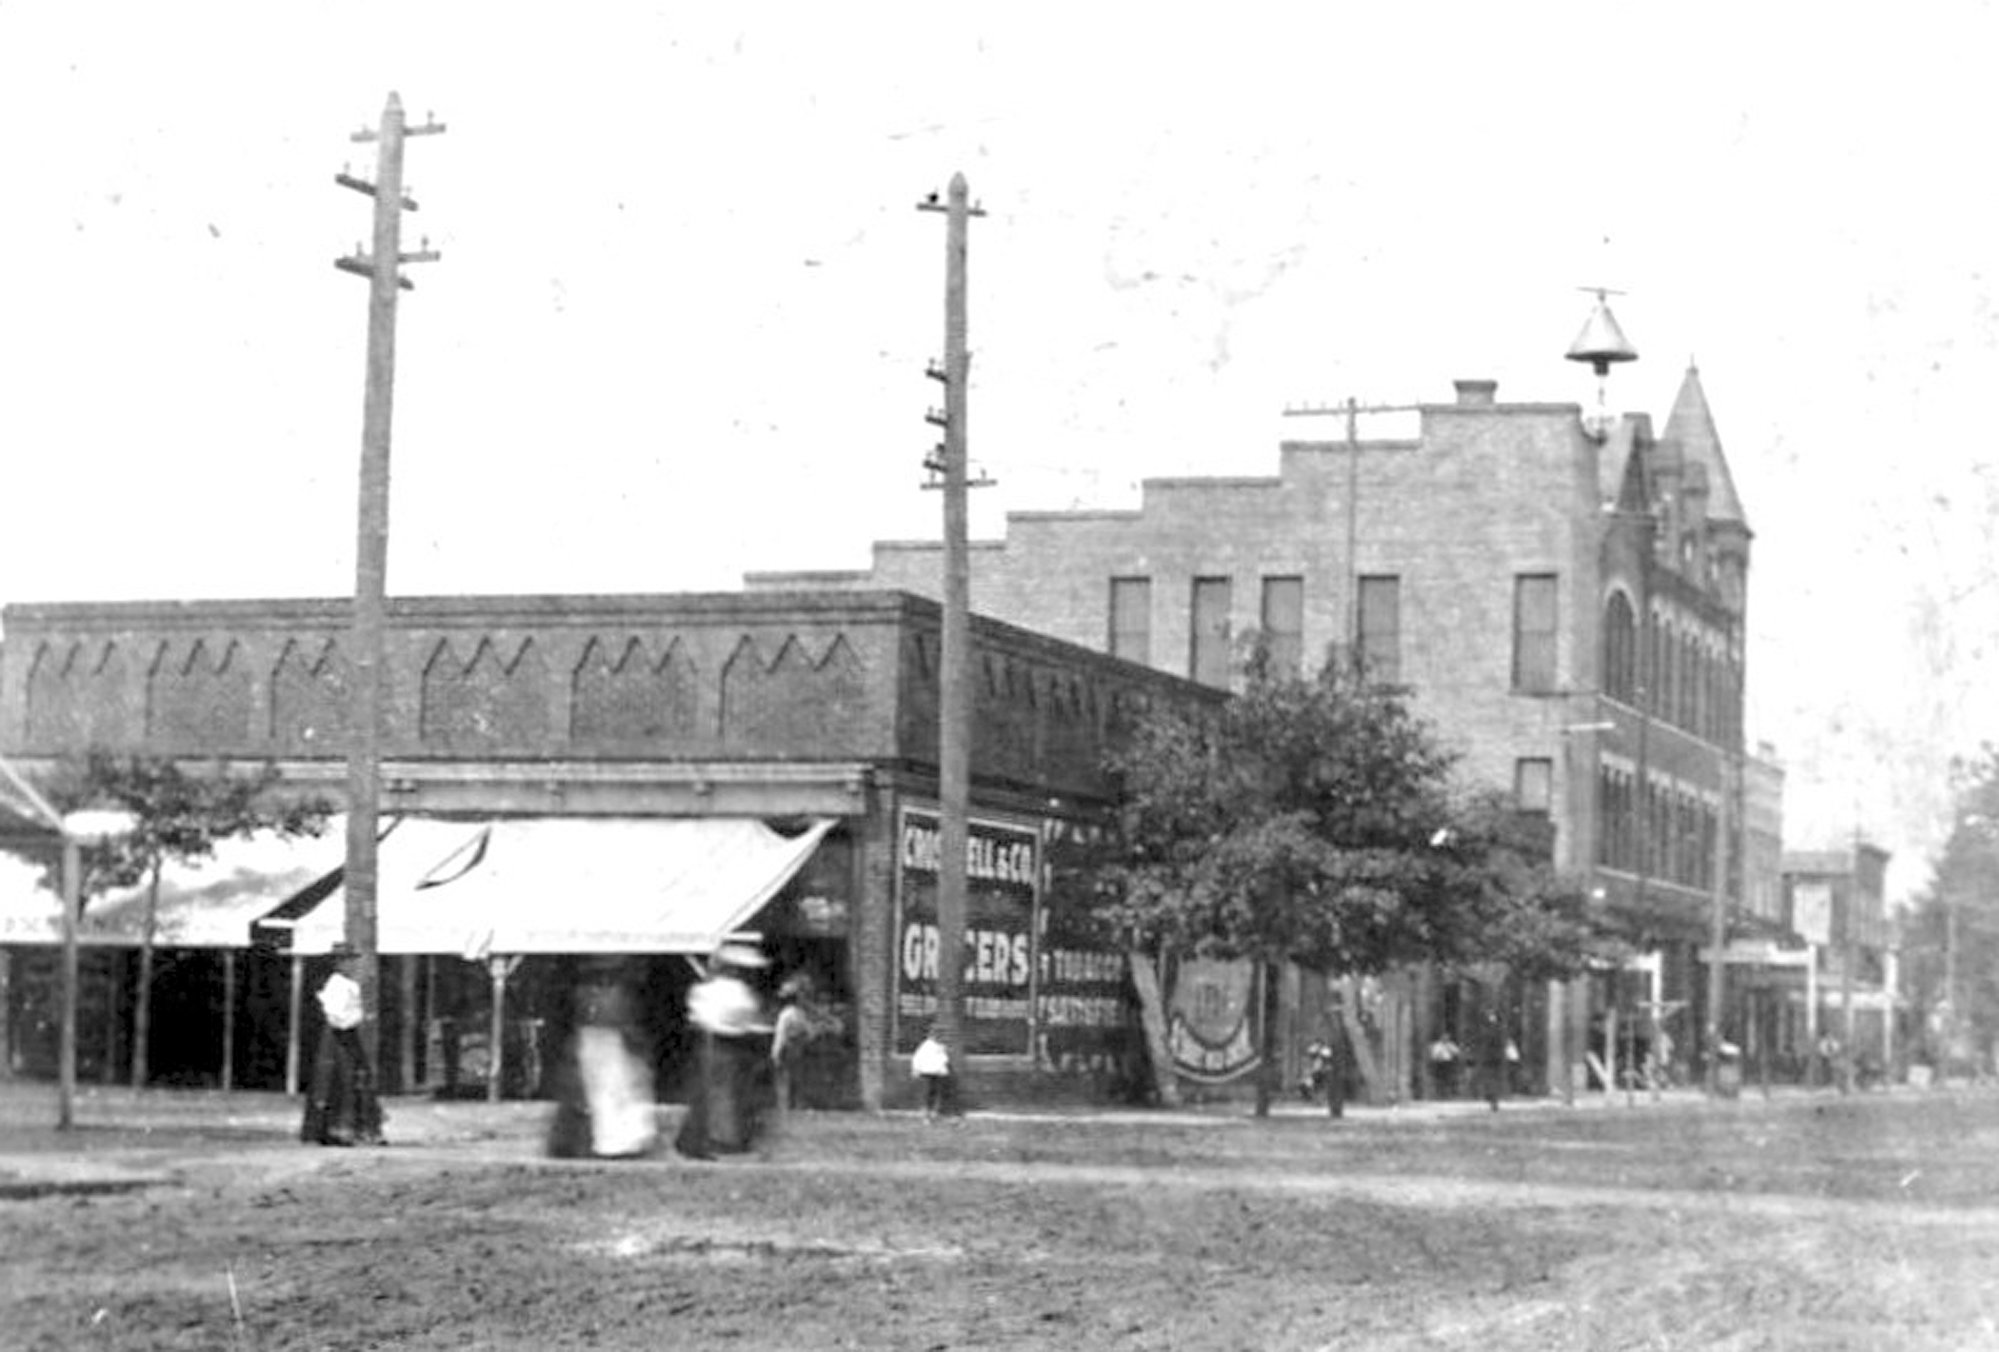 The building owned by James Barrett was acquired by McLellan's in 1916 and is seen here shortly after the turn of the century.